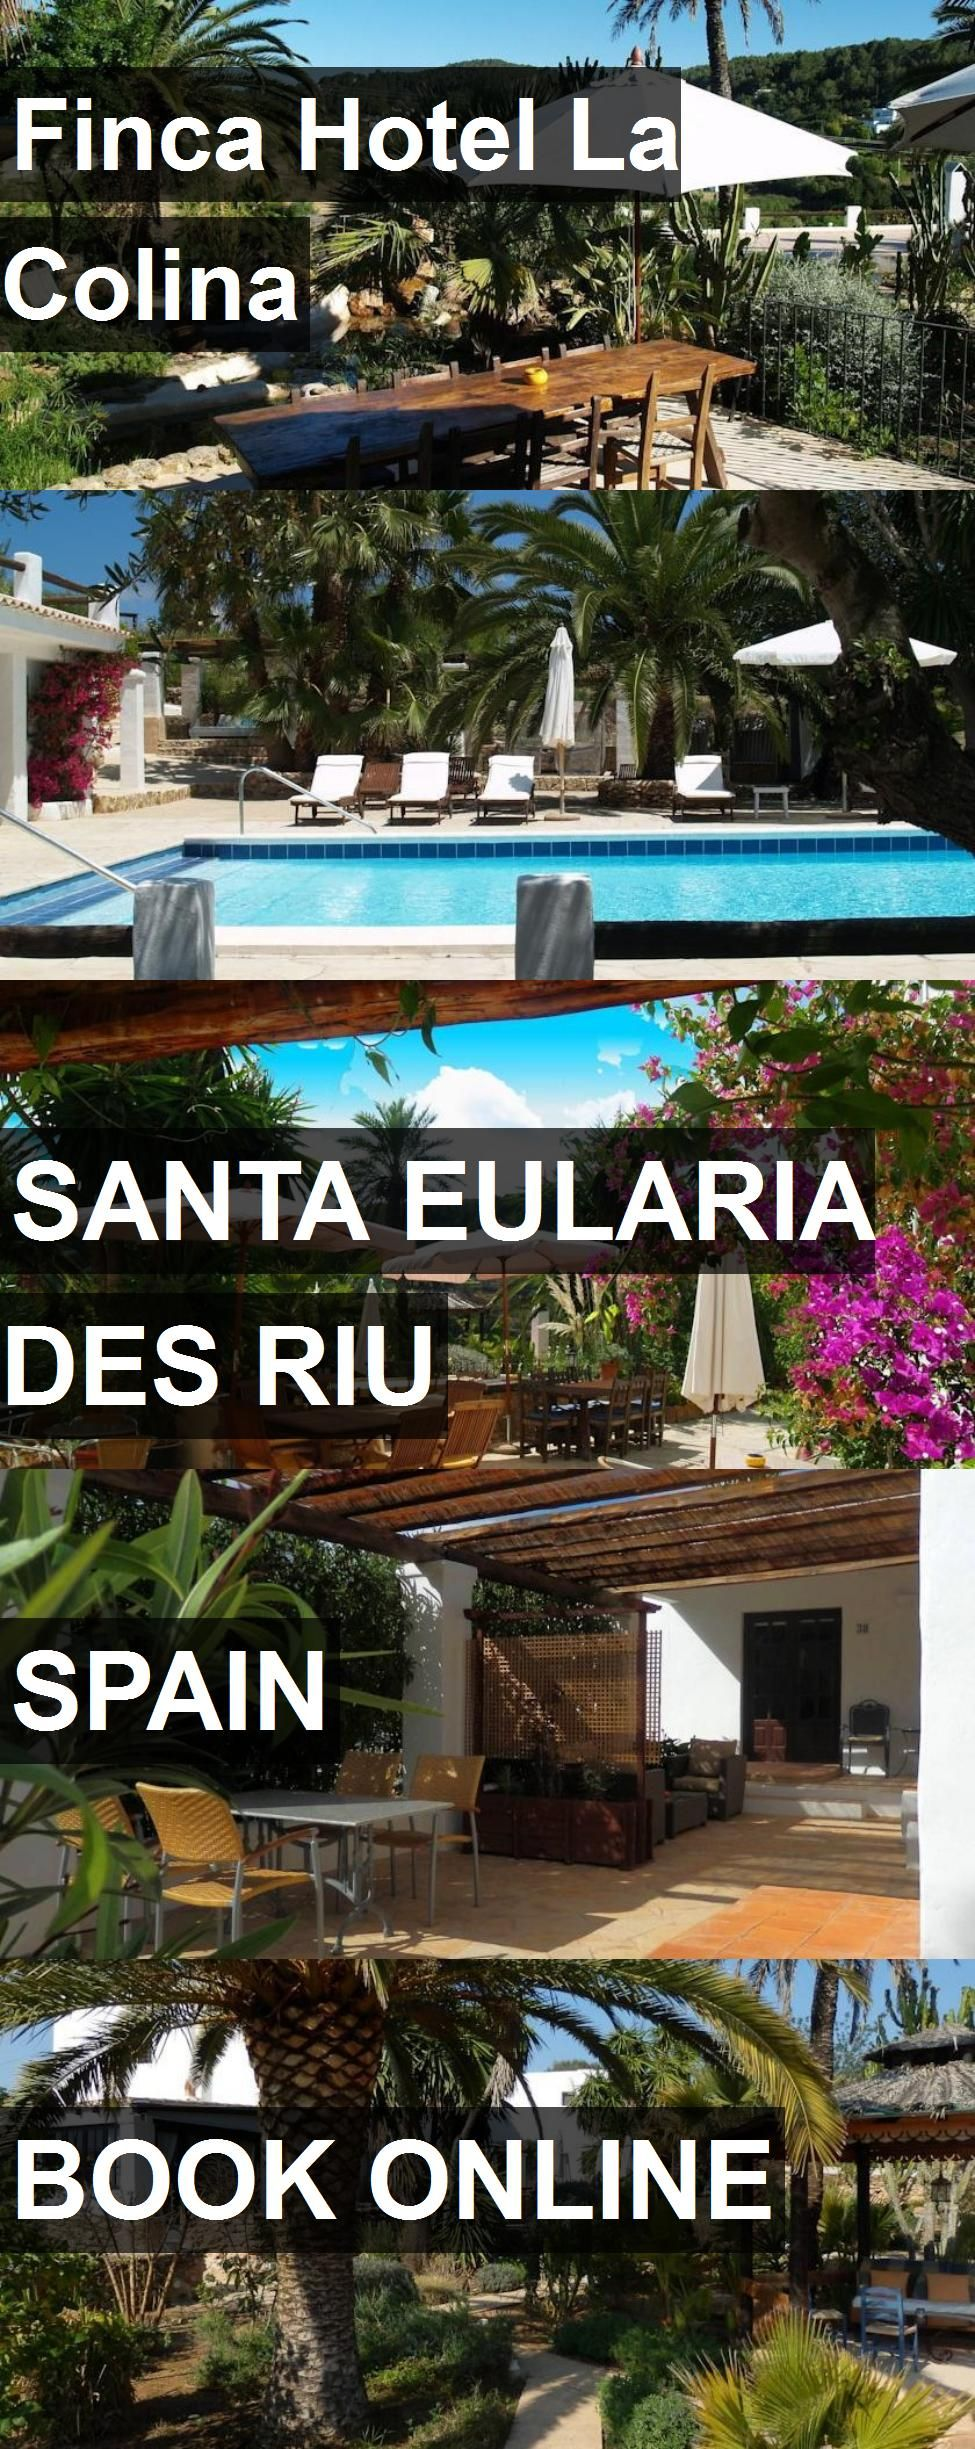 Finca Hotel La Colina in Santa Eularia des Riu, Spain. For more information, photos, reviews and best prices please follow the link. #Spain #SantaEulariadesRiu #travel #vacation #hotel